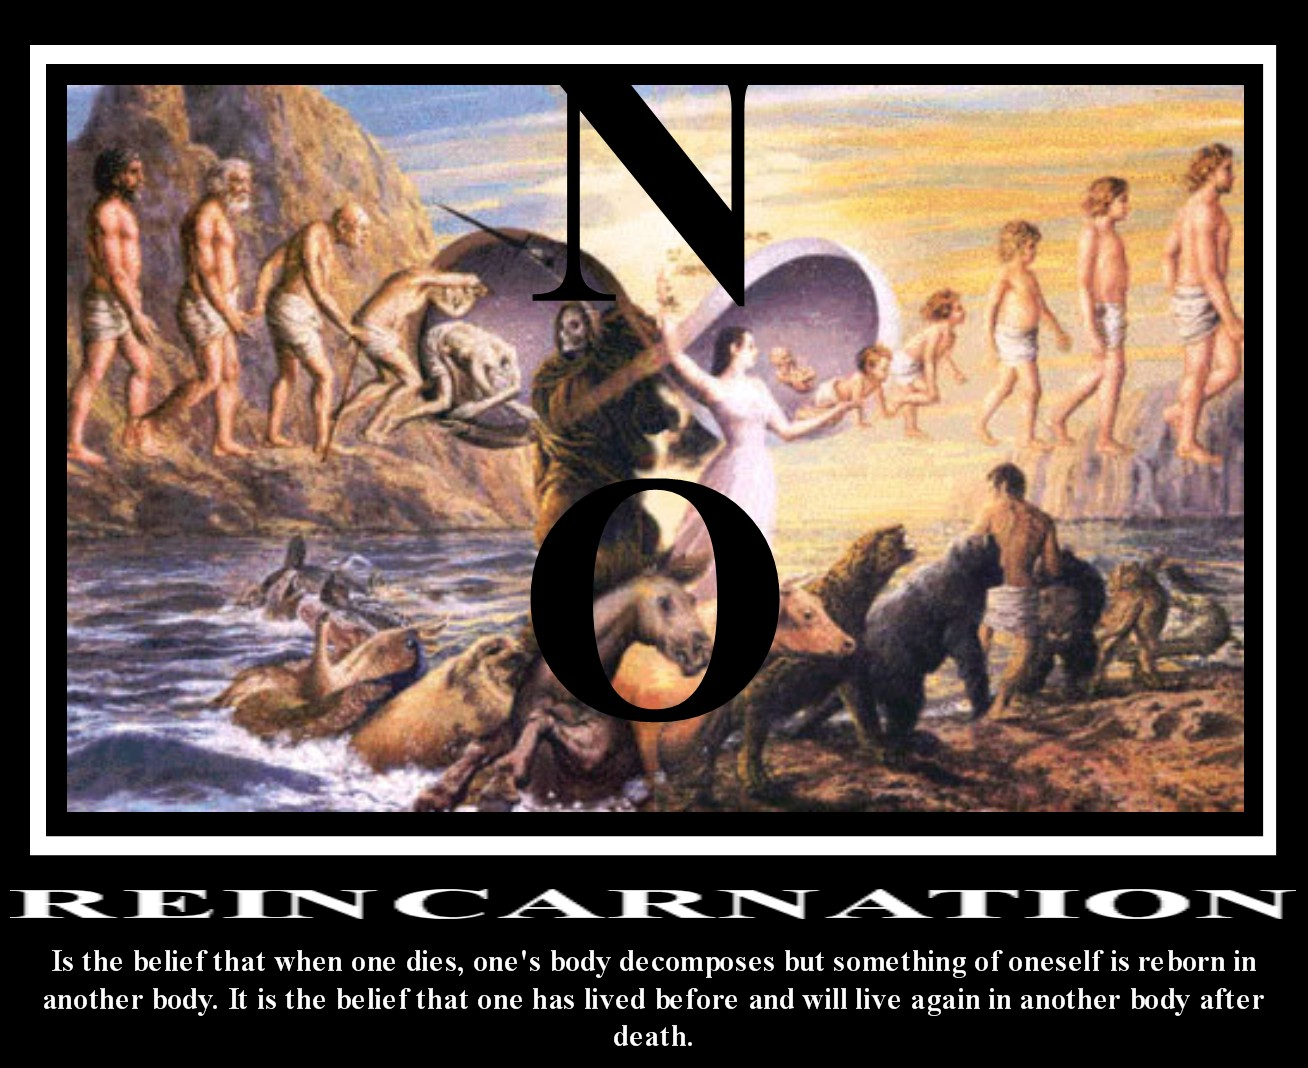 Reincarnation taken out of the bible